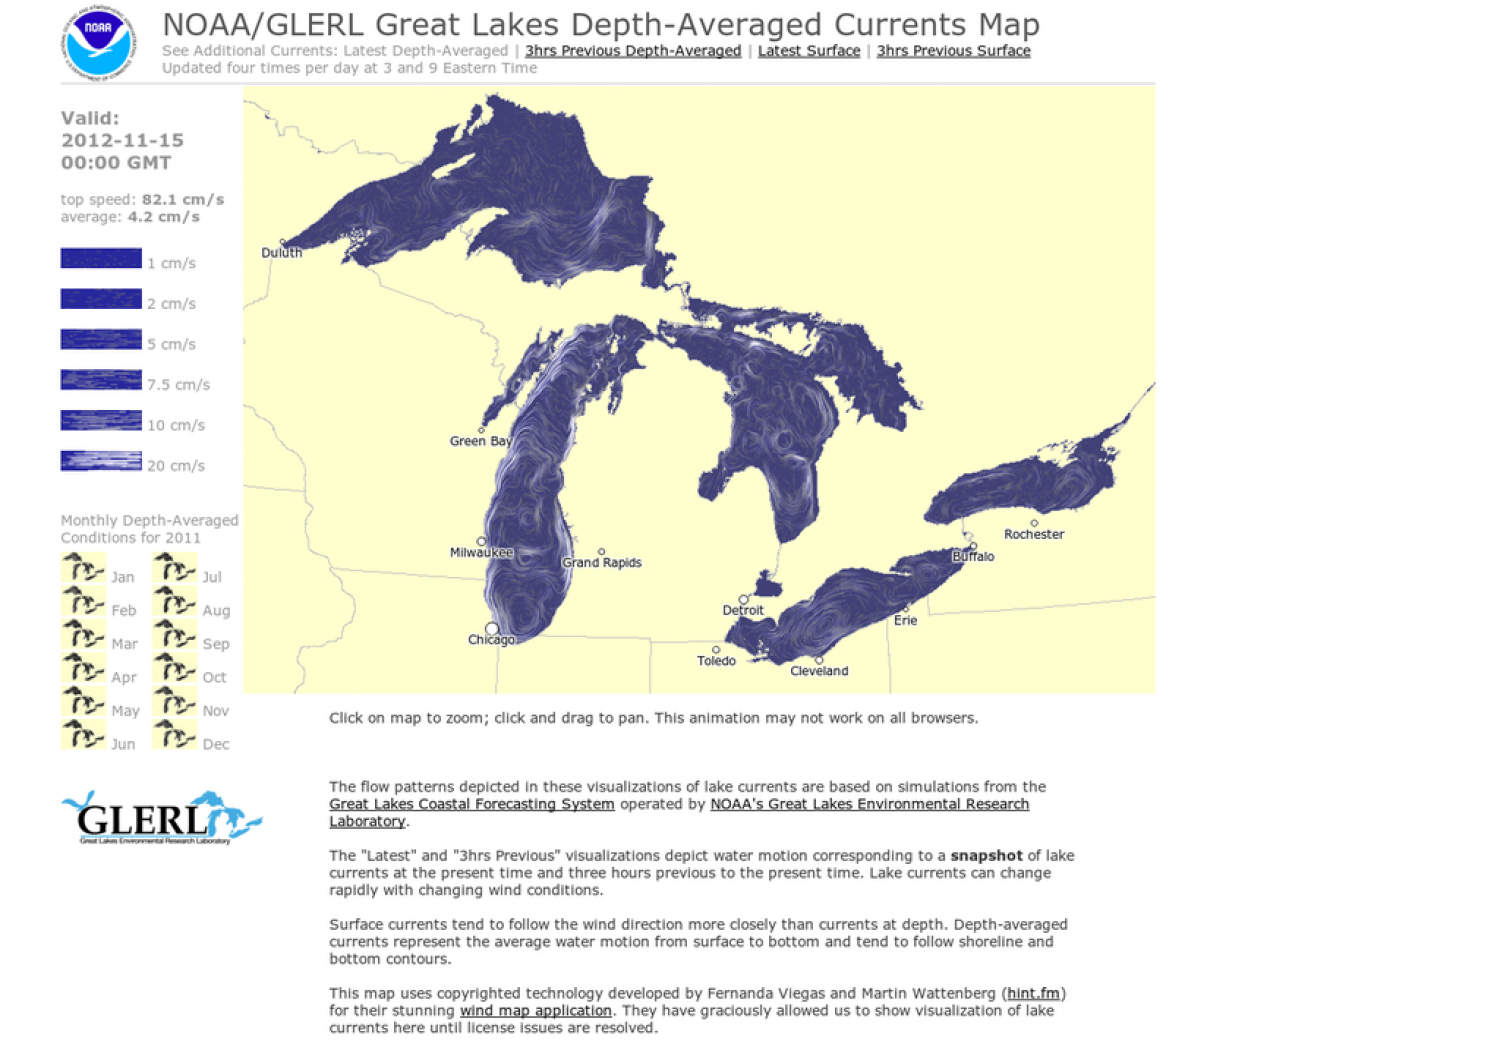 Great Lakes Depth-Averaged Currents Map Infographic